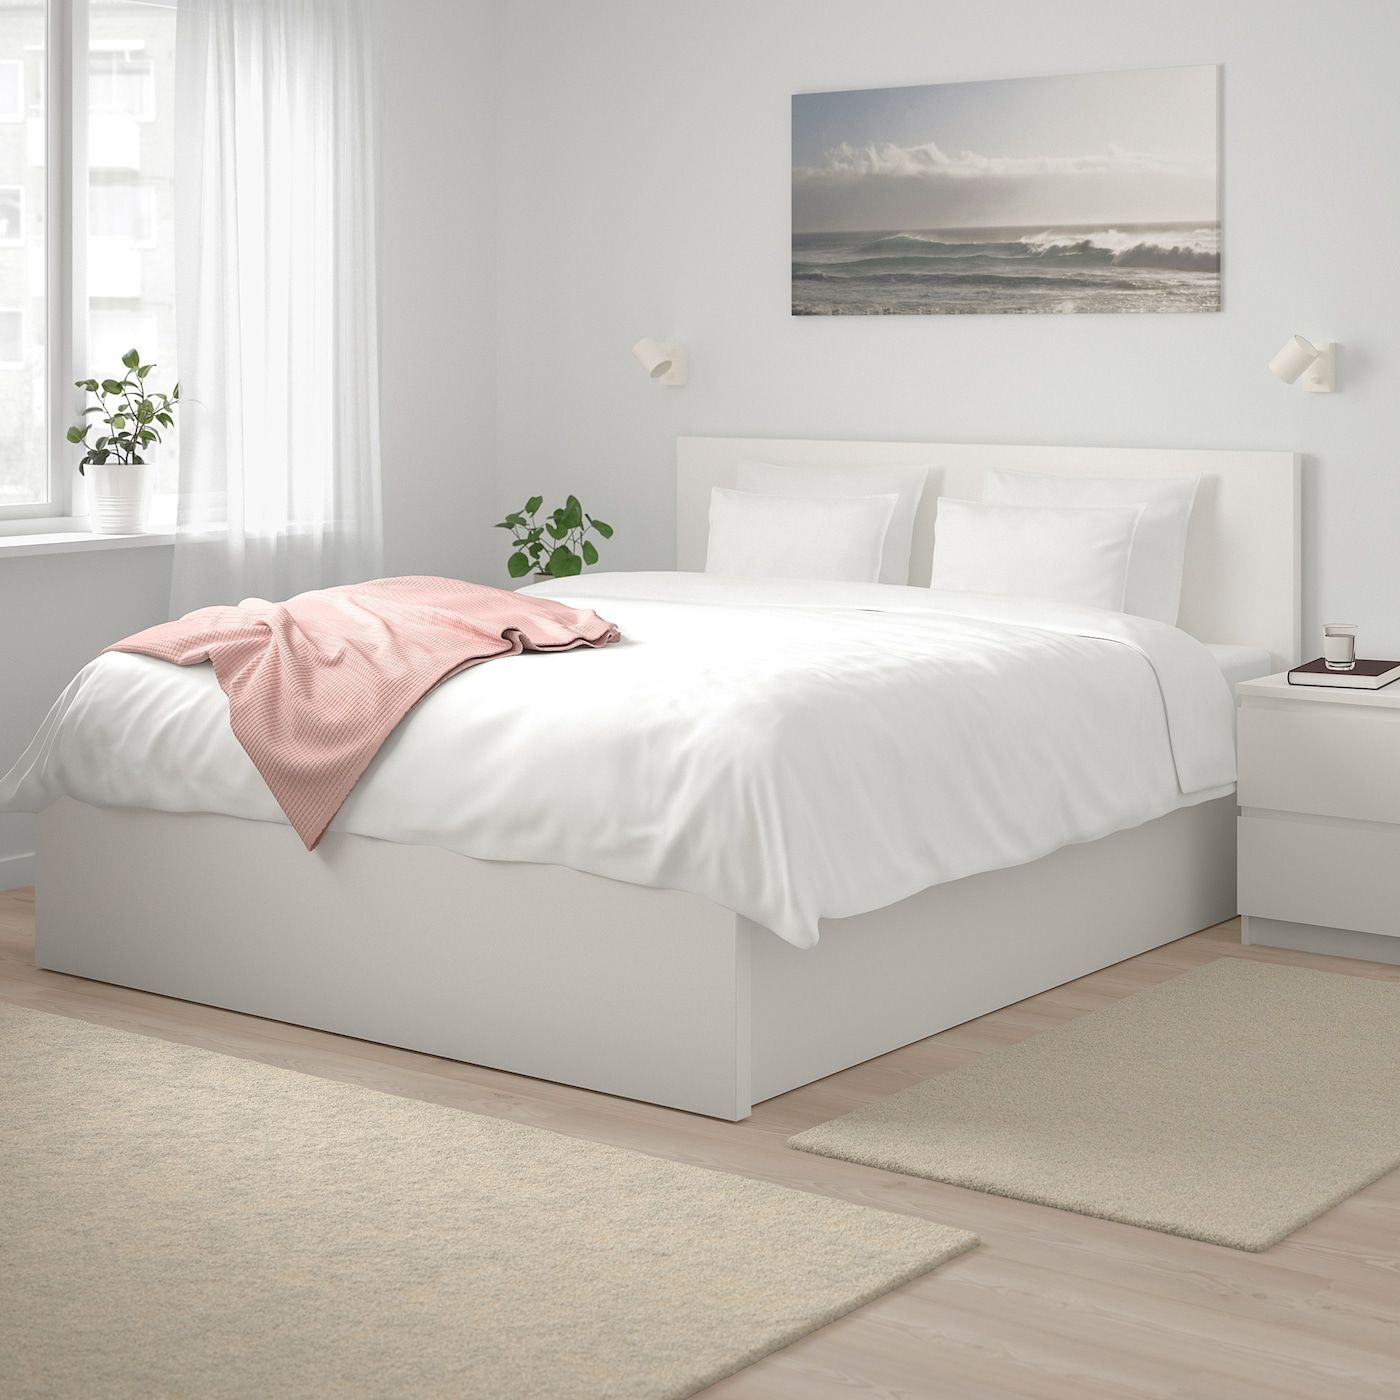 Malm Bedframe Met Opbergruimte Wit 140x200 Cm In 2020 Malm Bed